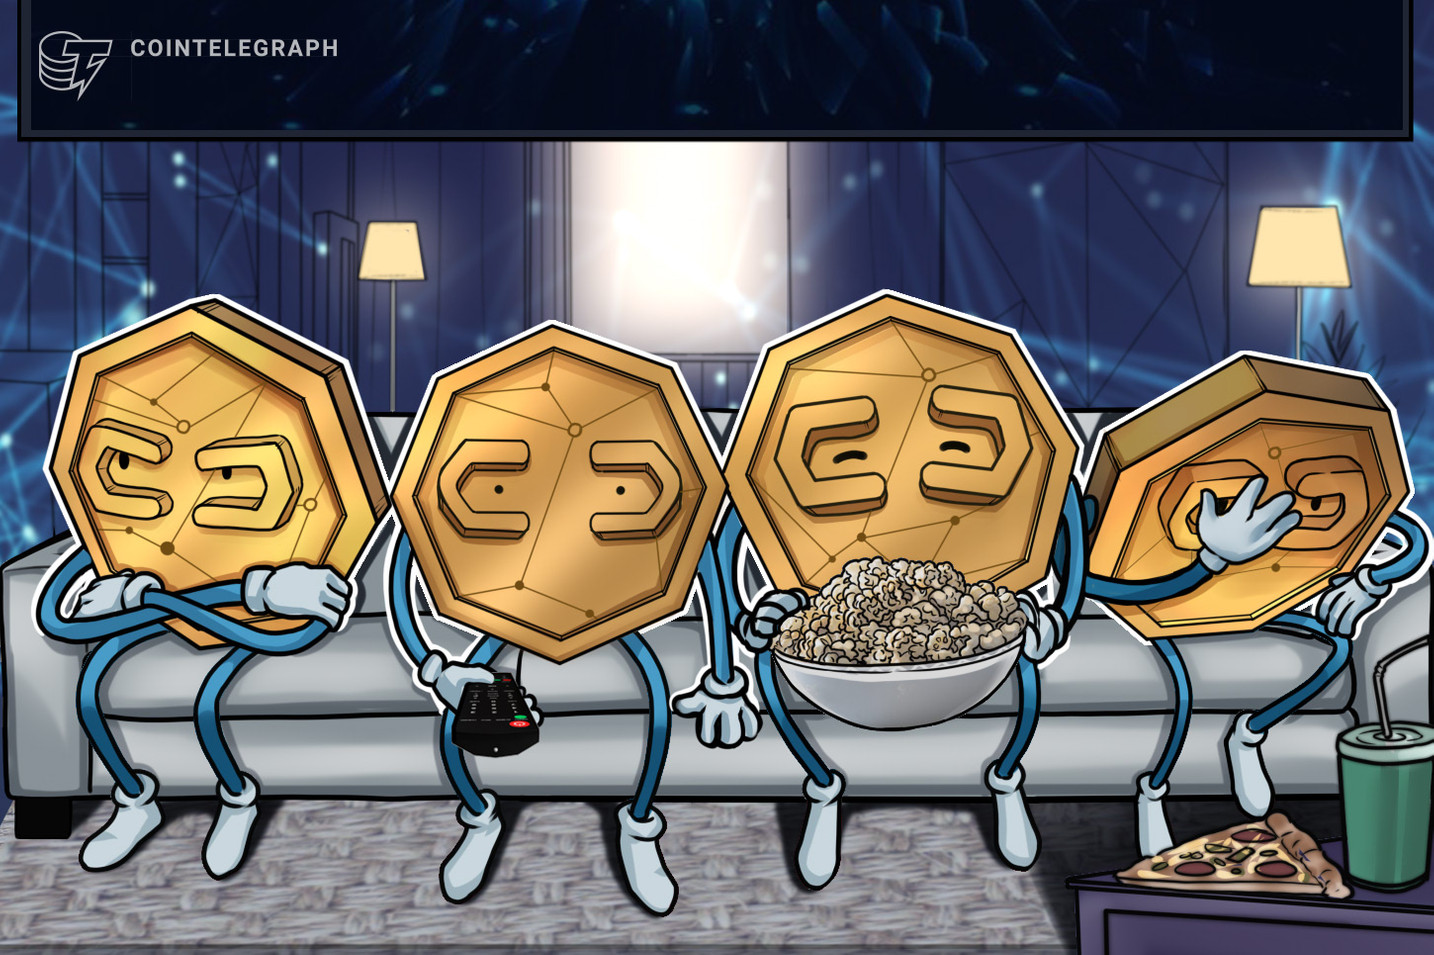 Reality show is casting crypto users locked out of their wallets